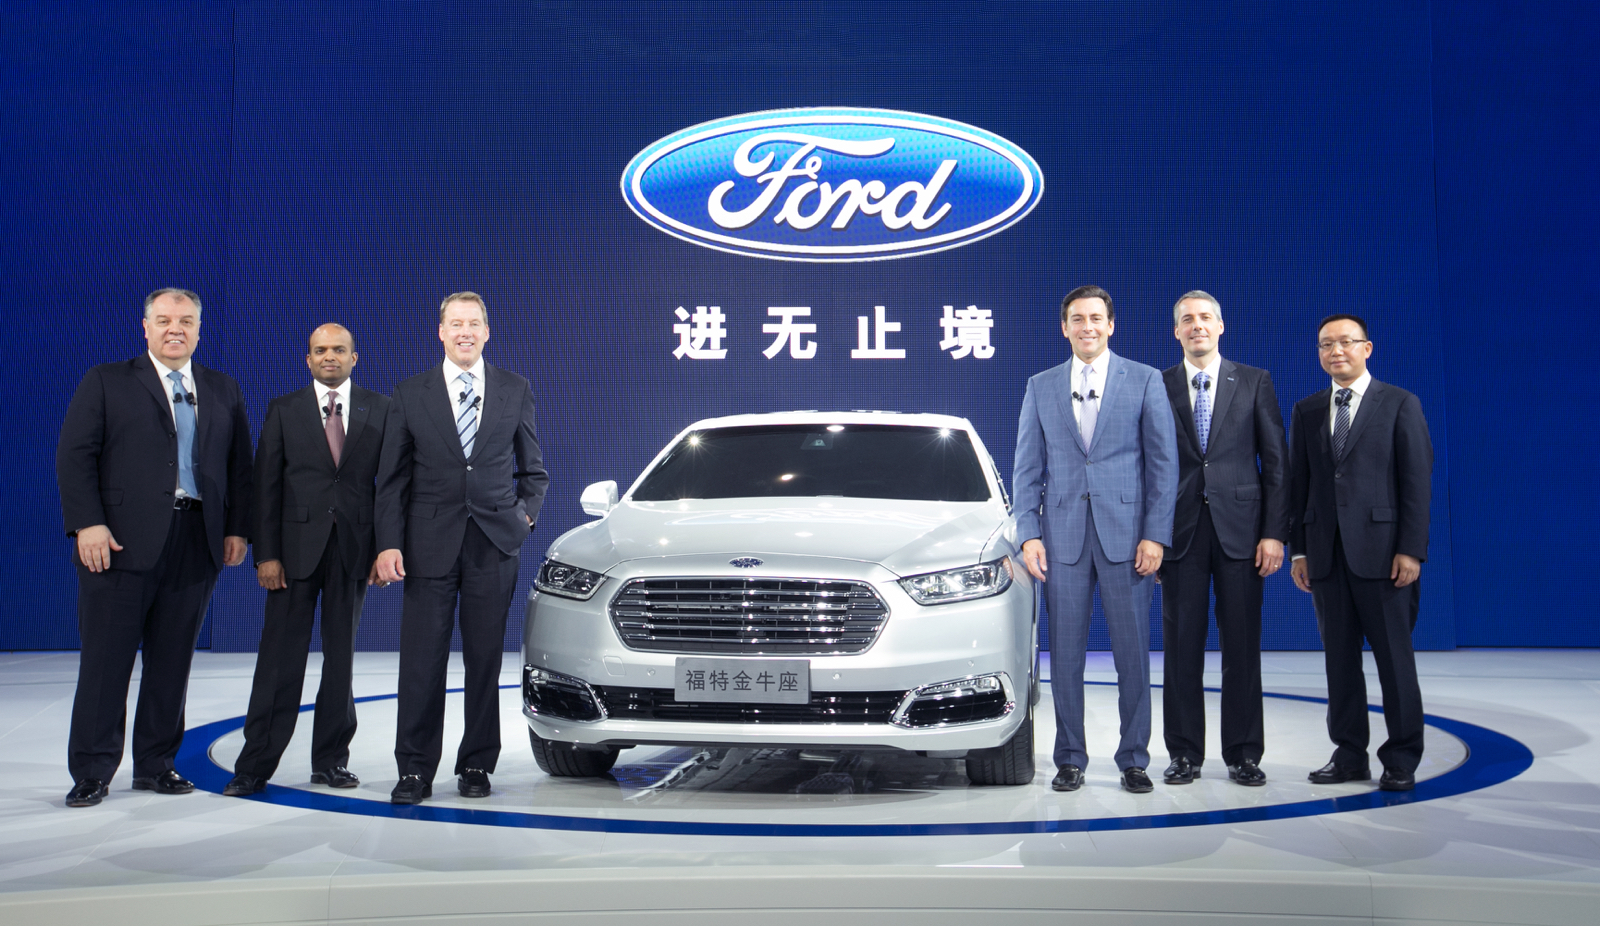 2015 Shanghai Auto Show Ford Press Conference